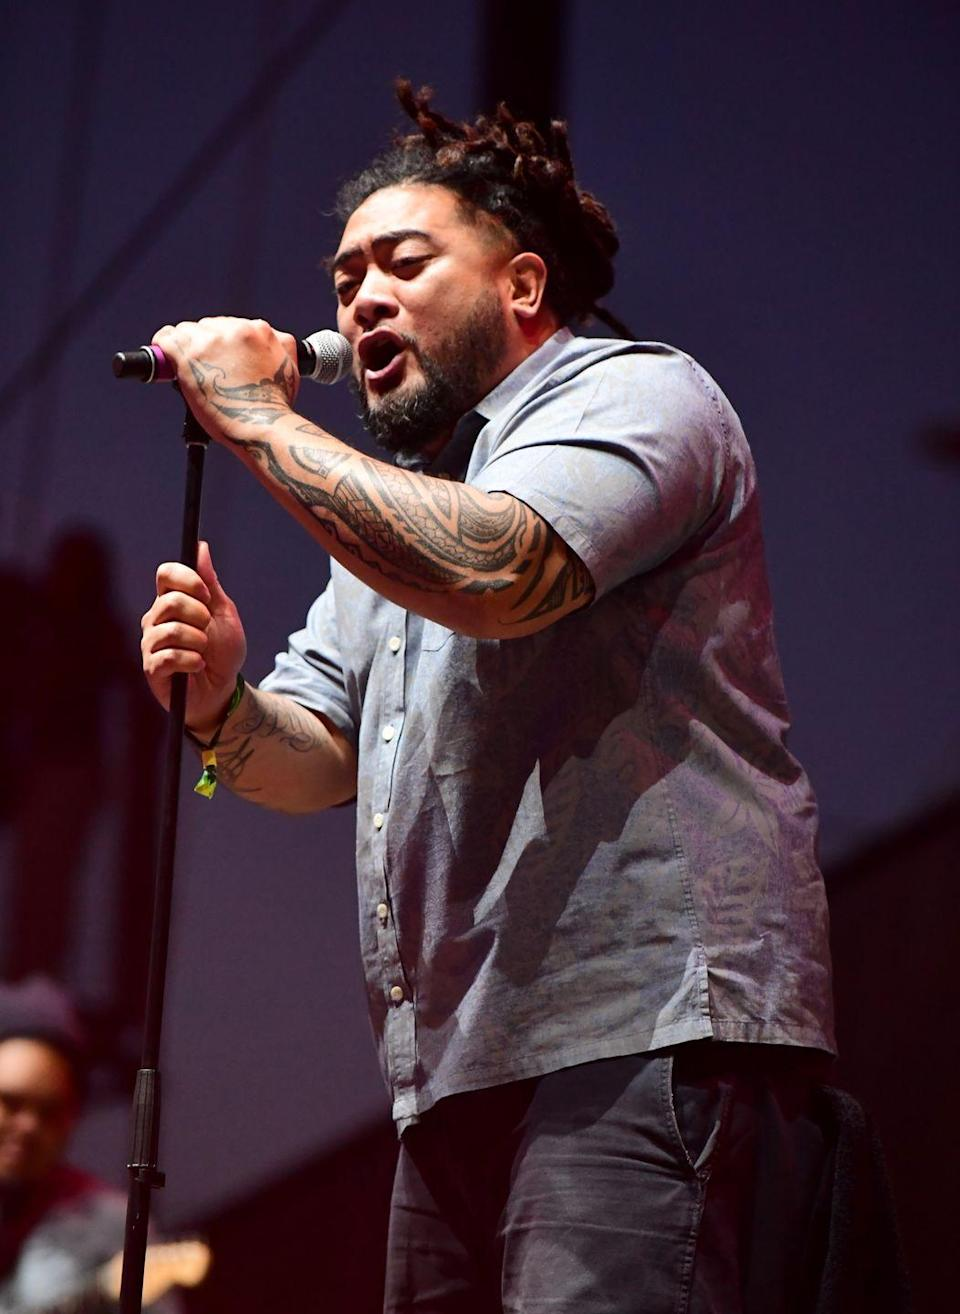 """<p>This reggae singer is the genius behind the TikTok viral dance and song """"Let's Do It Again,"""" which was actually released back in 2011. Born of Samoan descent, <strong>J Boog</strong> was born and raised in California, but he continues to be a top reggae artist in Hawaii, where he lives now to pursue his music career. To this day, he's releasing music — his latest single is called """"Free of Dem.""""</p>"""